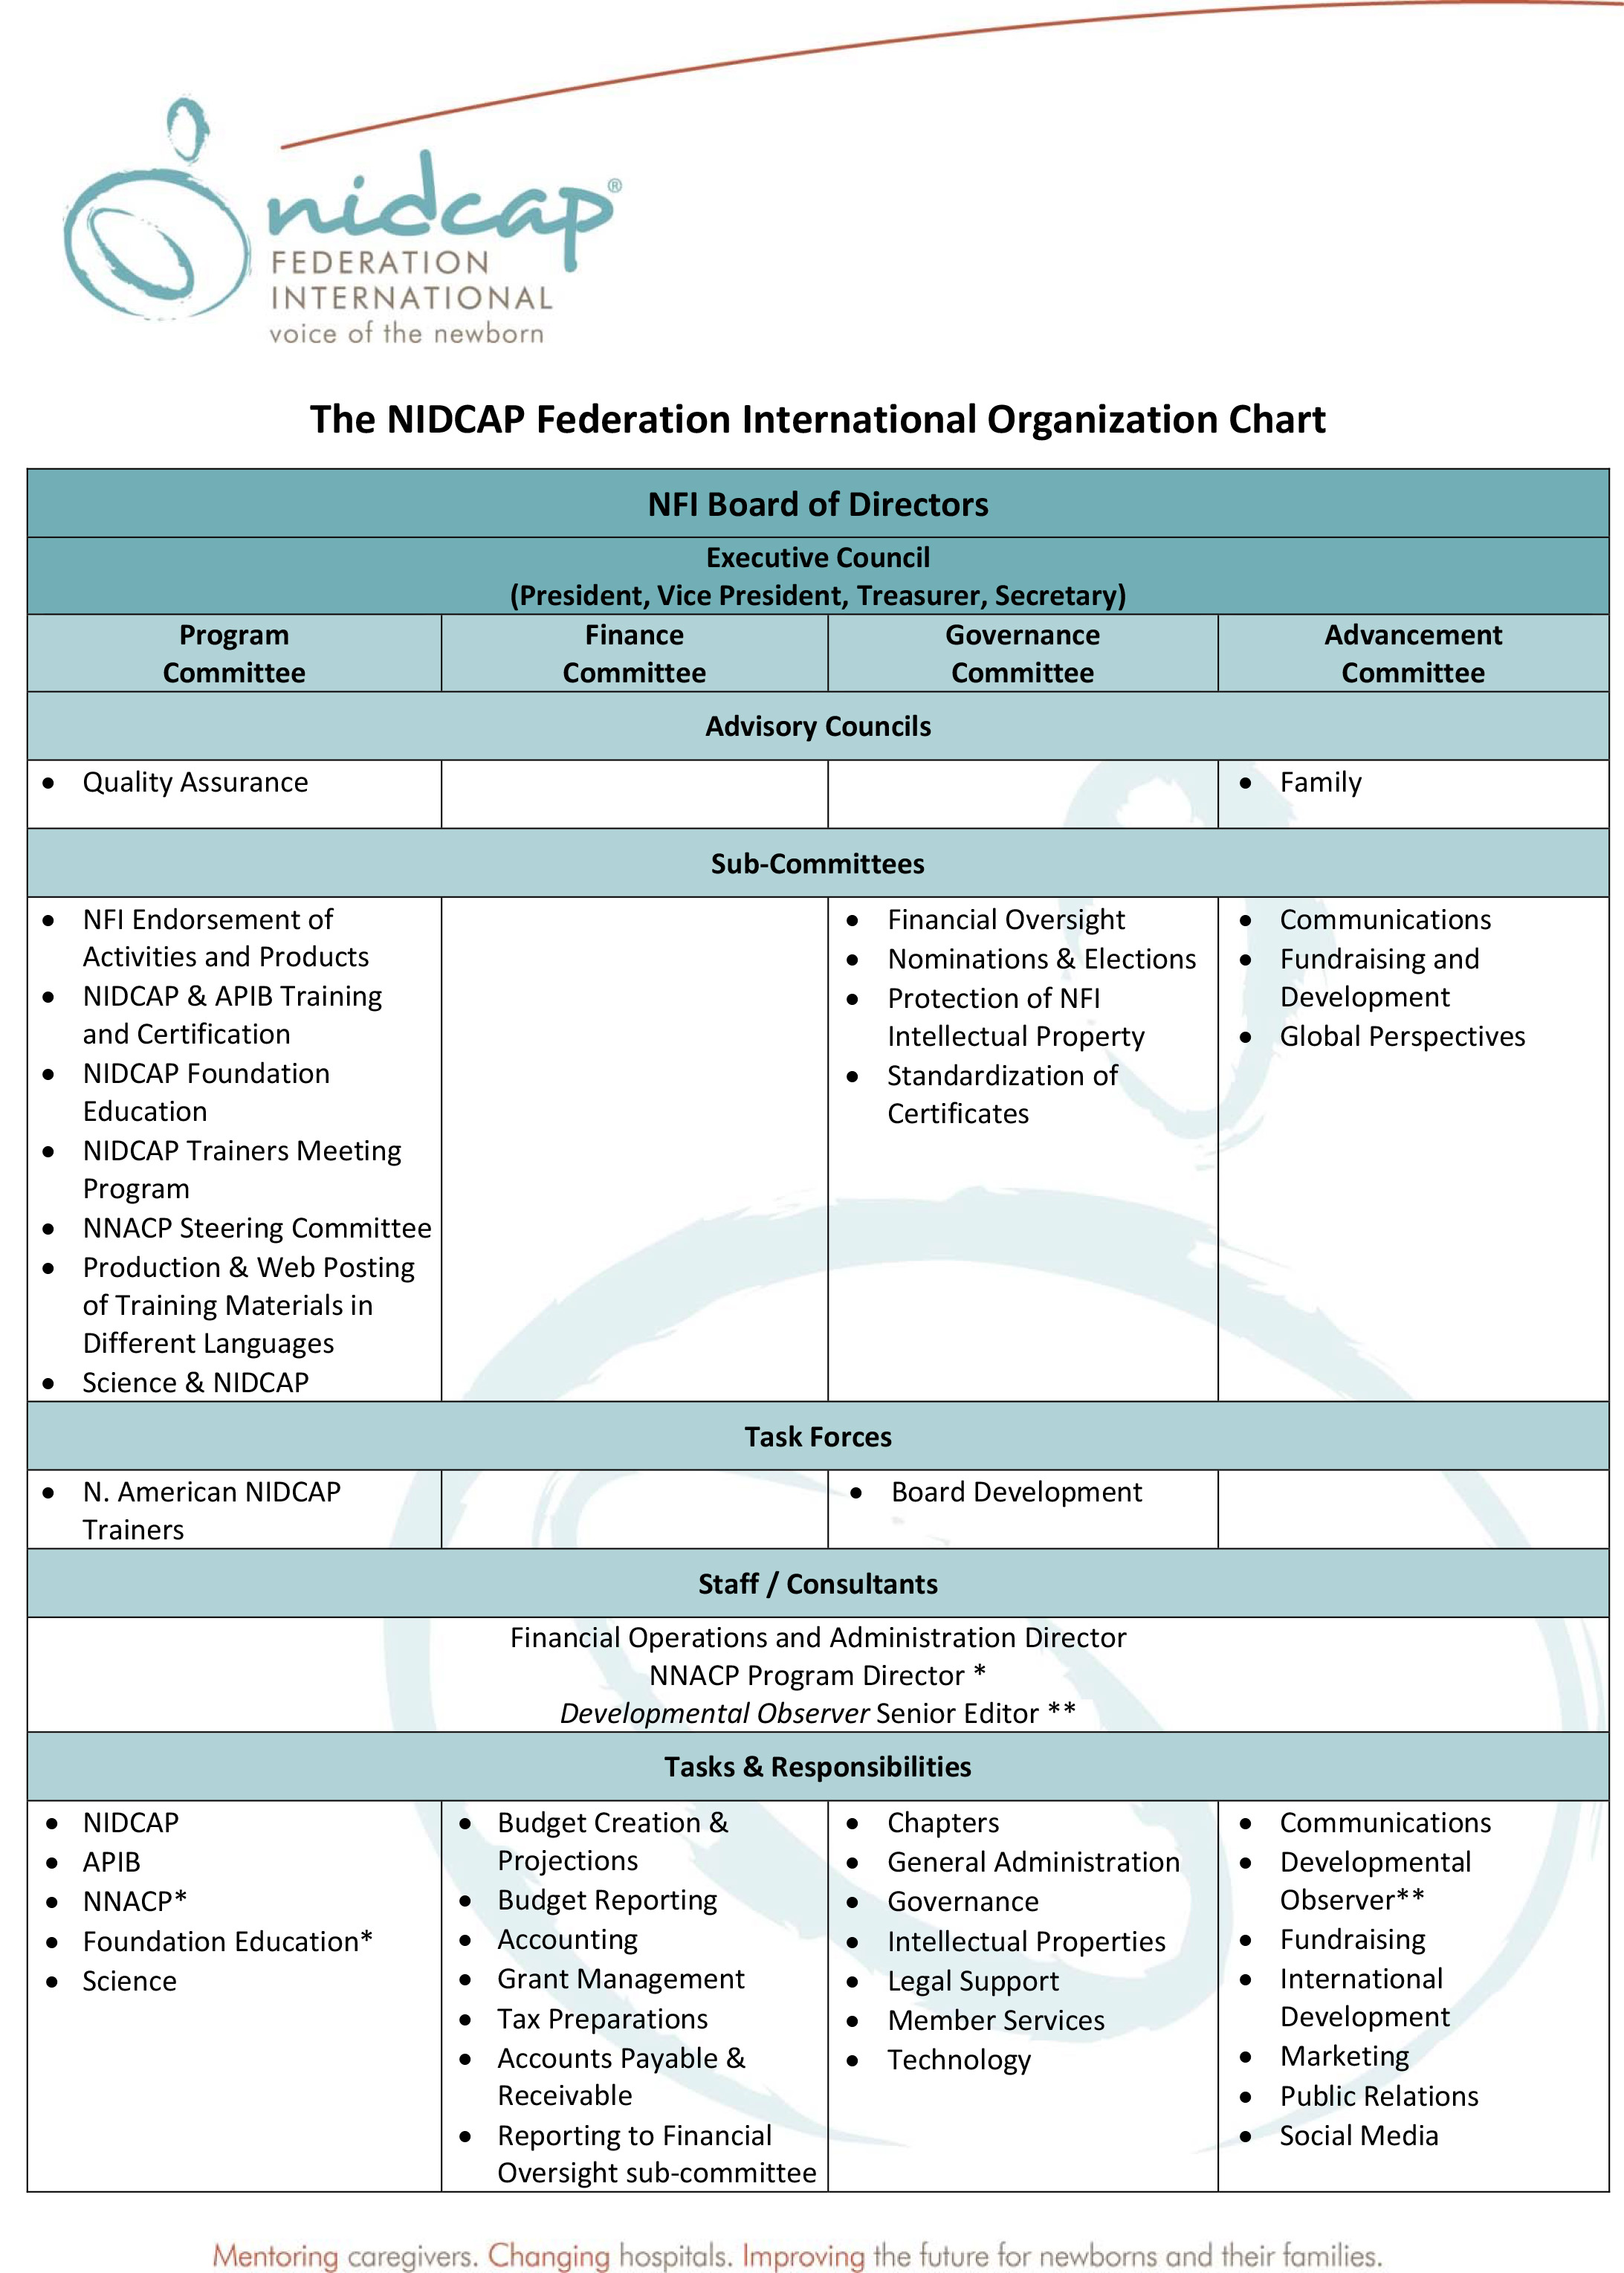 Microsoft Word - The NFI Organization Chart Revised August 30 20